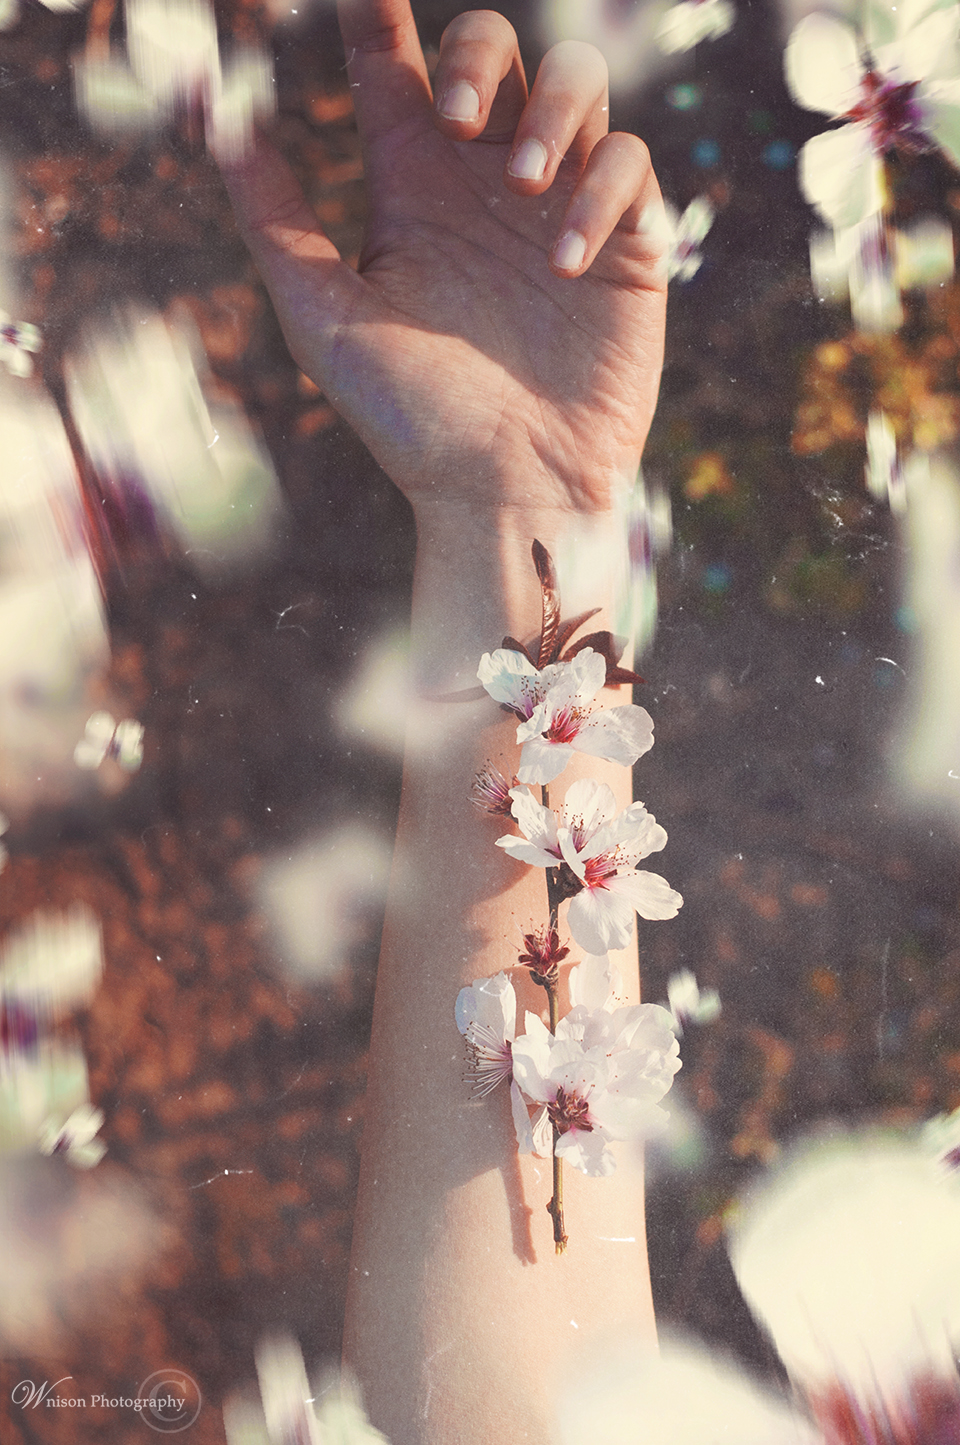 It's Spring in your veins by Wnison